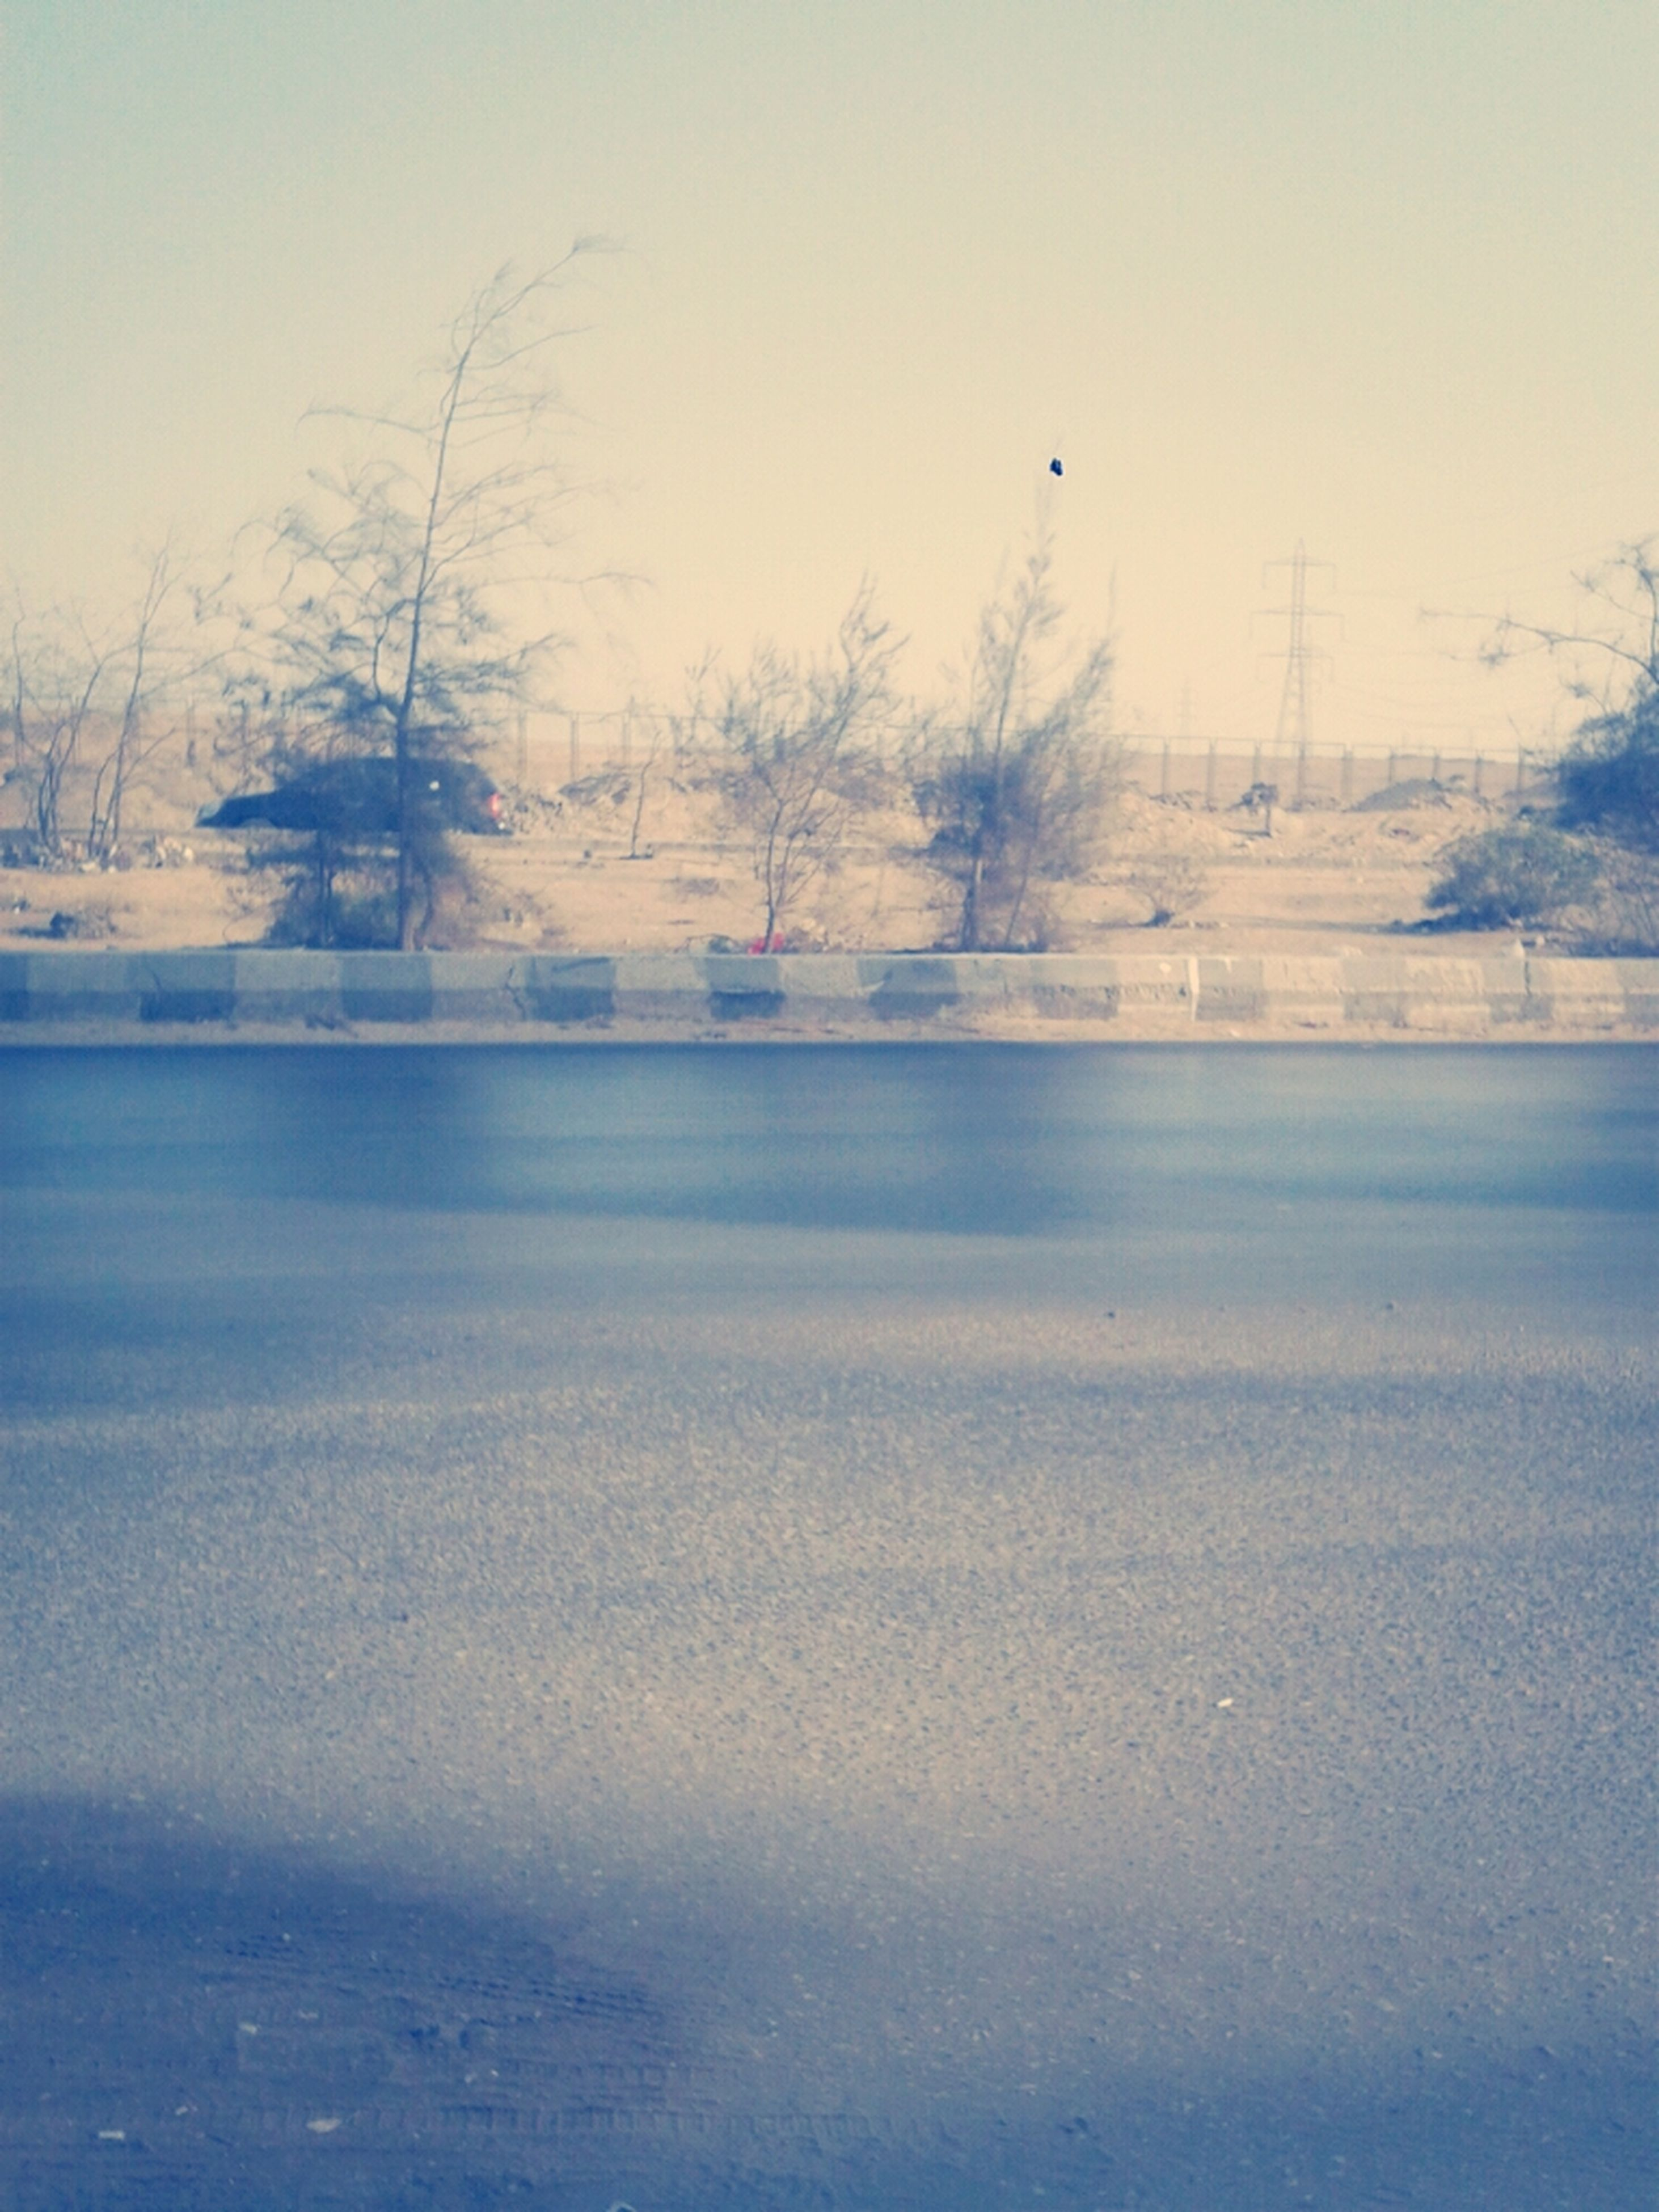 winter, snow, cold temperature, season, weather, frozen, tranquil scene, tranquility, covering, scenics, beauty in nature, clear sky, nature, bare tree, water, landscape, tree, lake, snow covered, covered